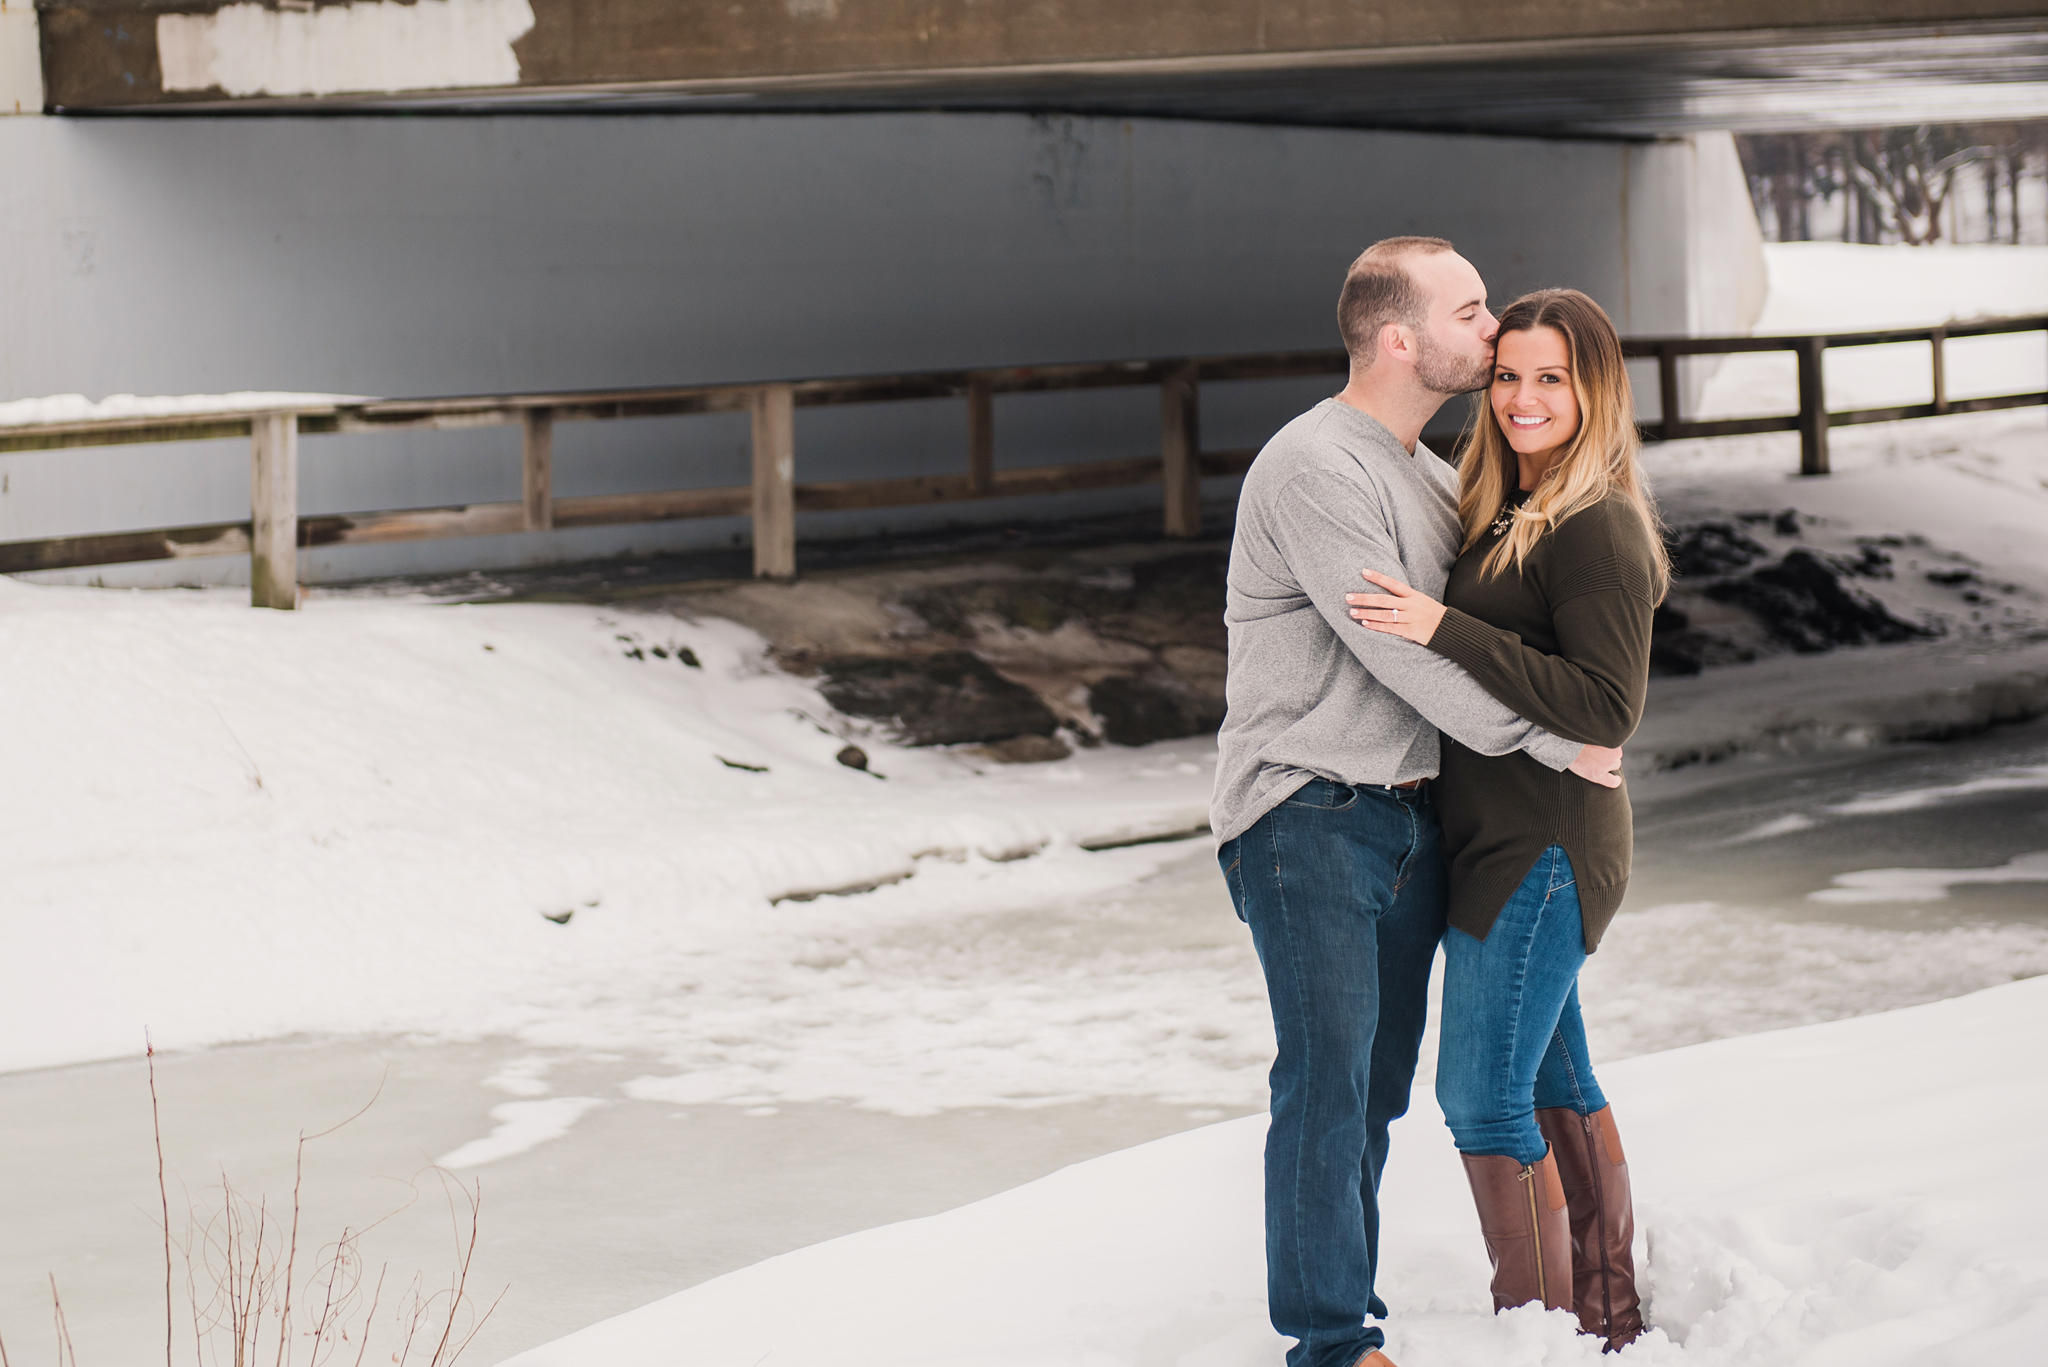 Webster_Park_Engagement_Session_Rochester_NY_photographer_DSC_6465.jpg